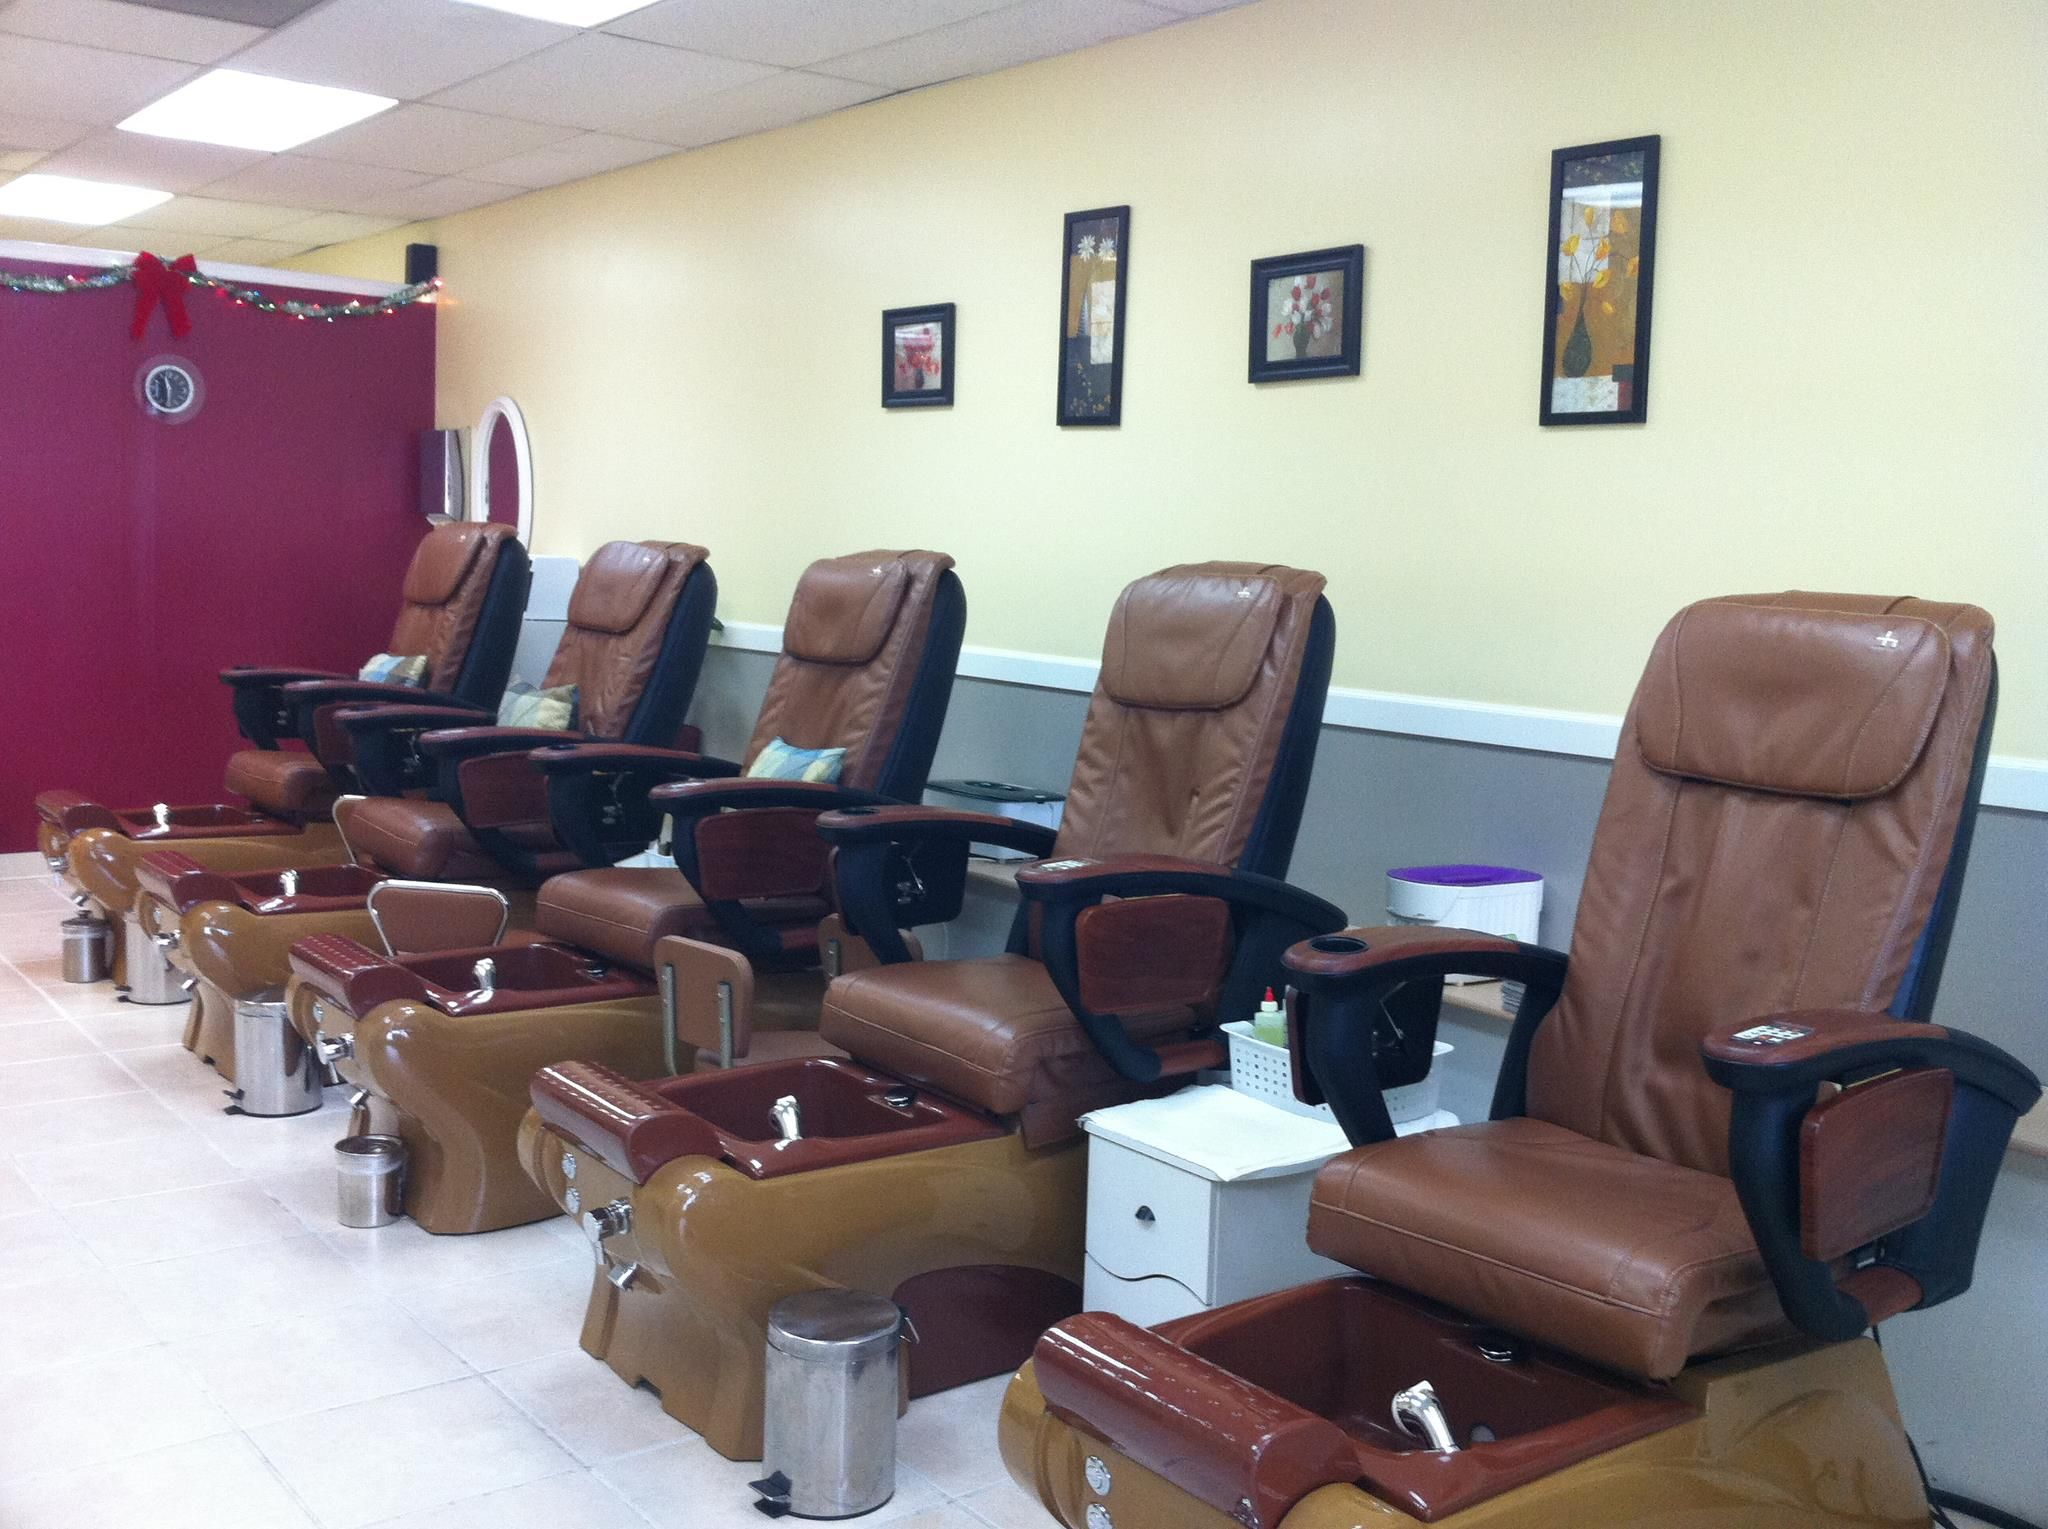 Luxury Spa Nails & Waxing | Spas, Salons and Health | Pinterest ...